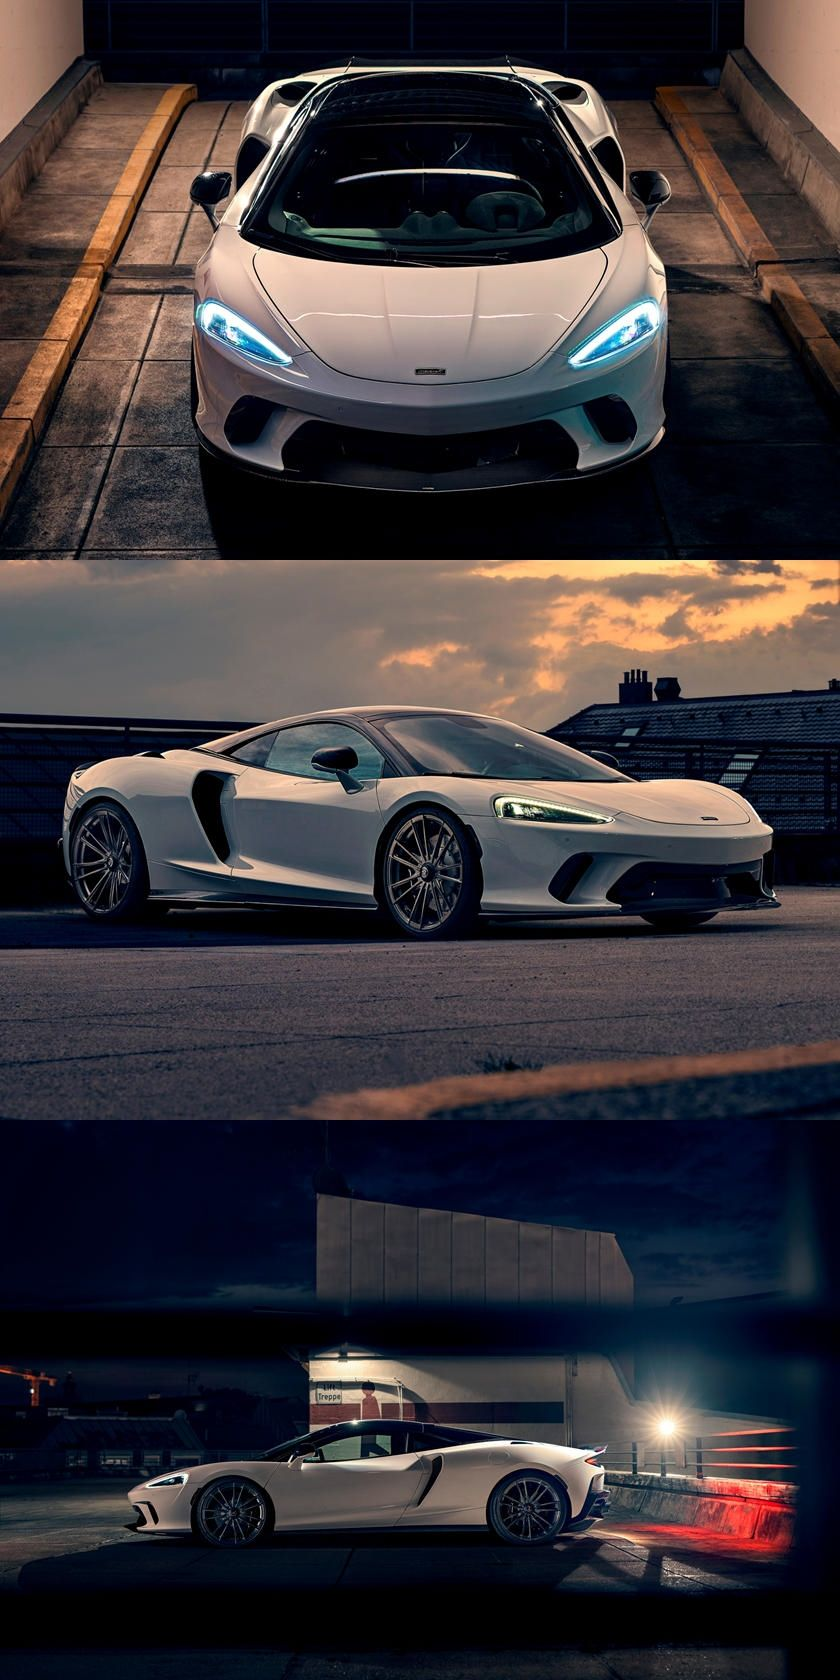 Novitec Takes Mclaren Gt To A Whole New Level More Power New Wheels And Some Carbon Bits Make All The Differe In 2020 Sports Cars Mustang Mclaren Cool Car Backgrounds